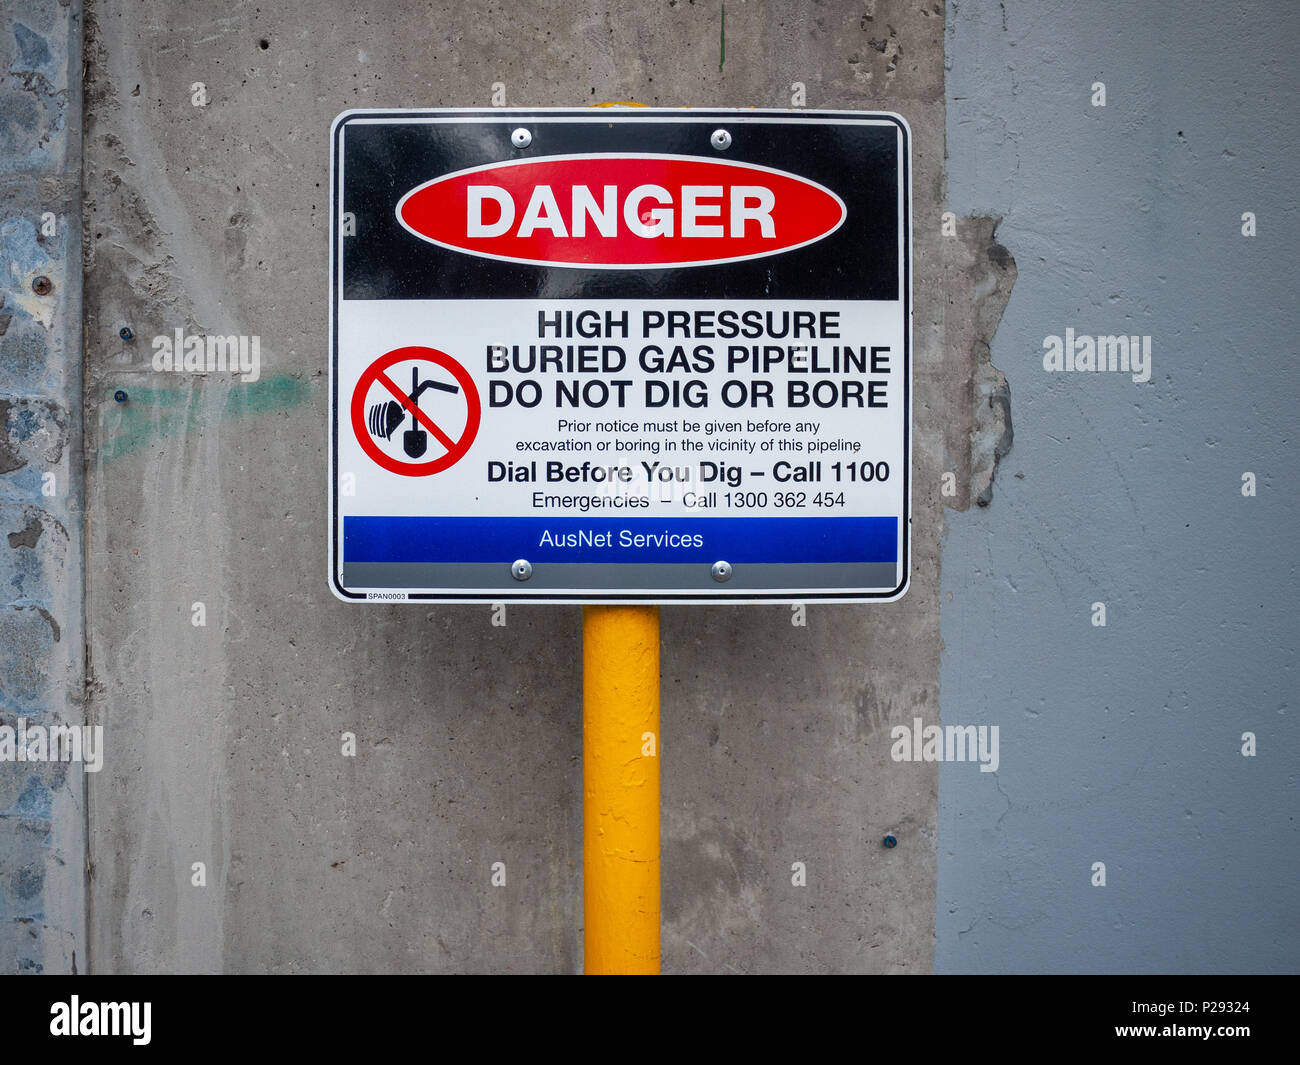 Warning sign of high pressure buried gas pipeline. - Stock Image